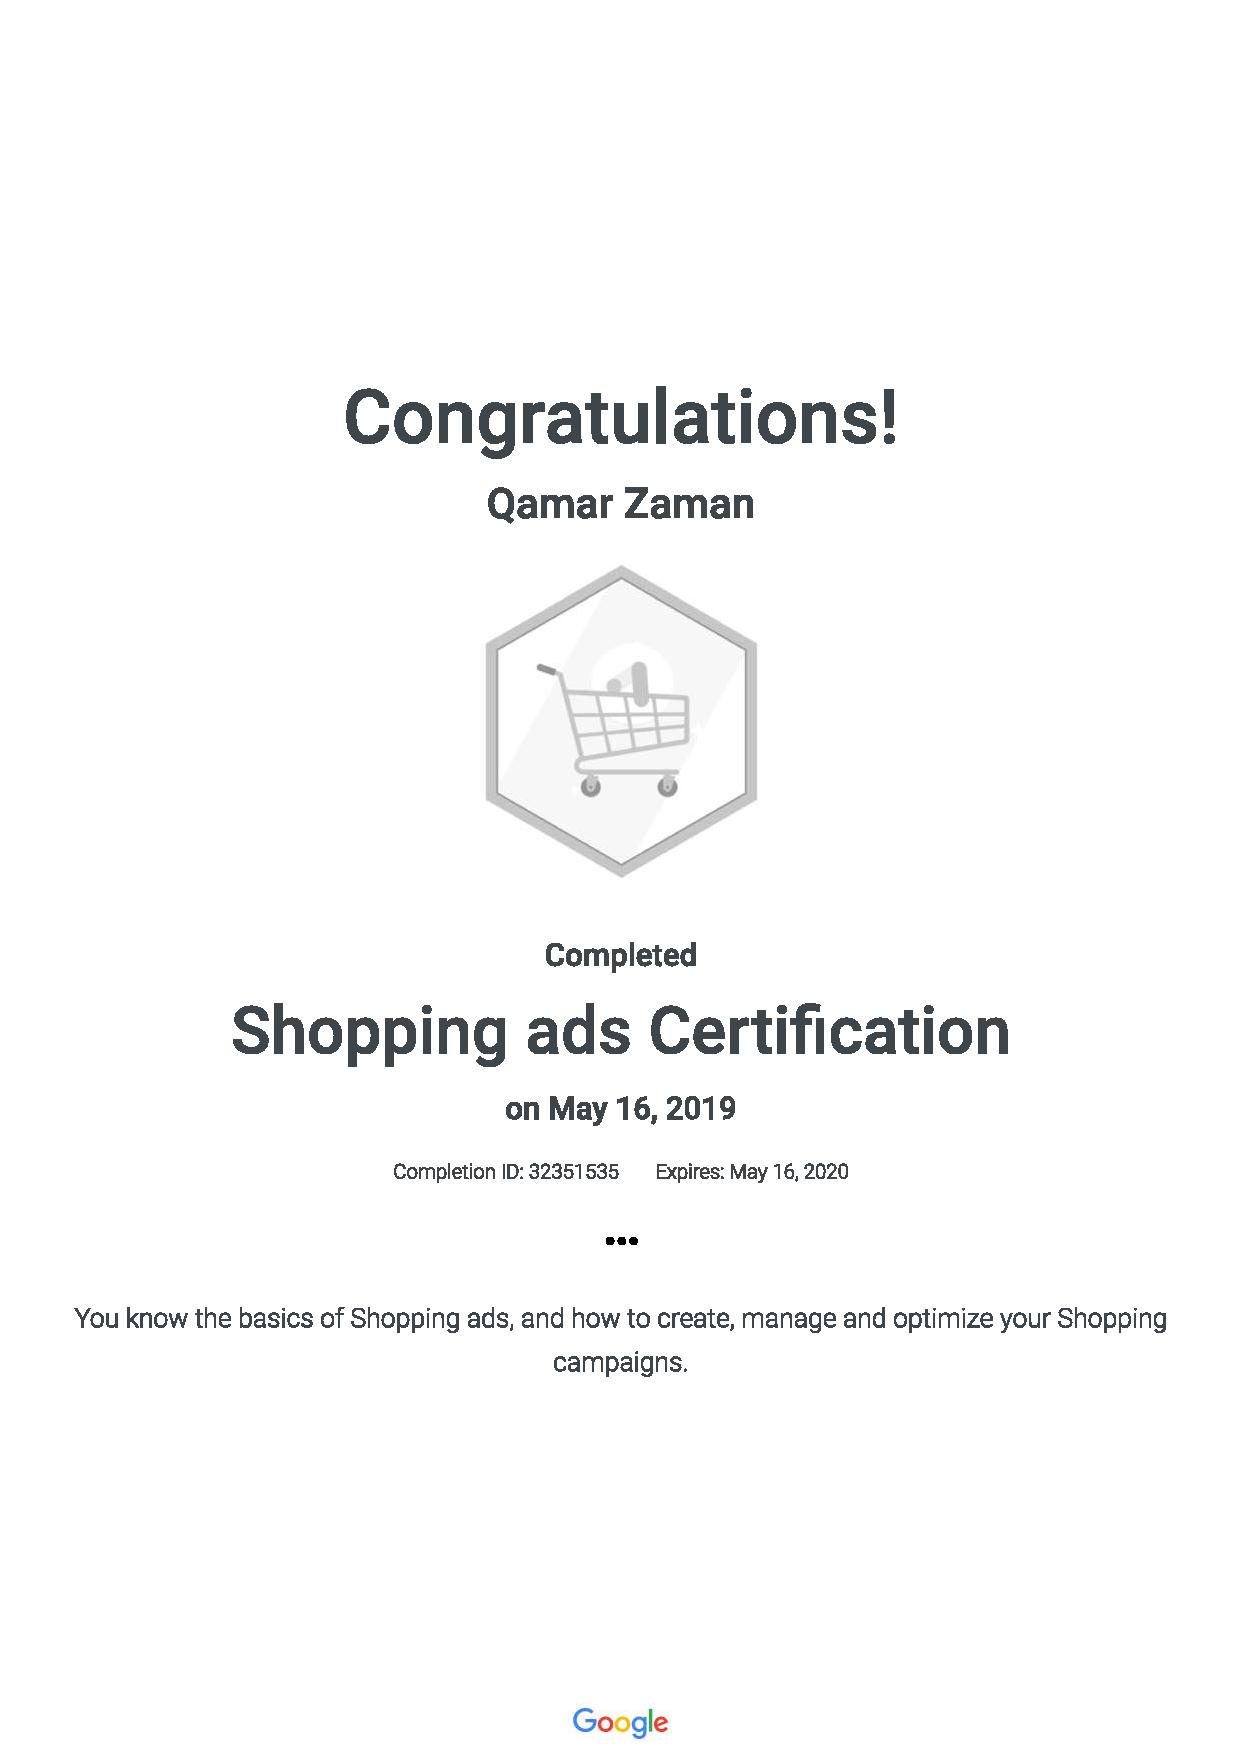 Shopping ads Certification 201905